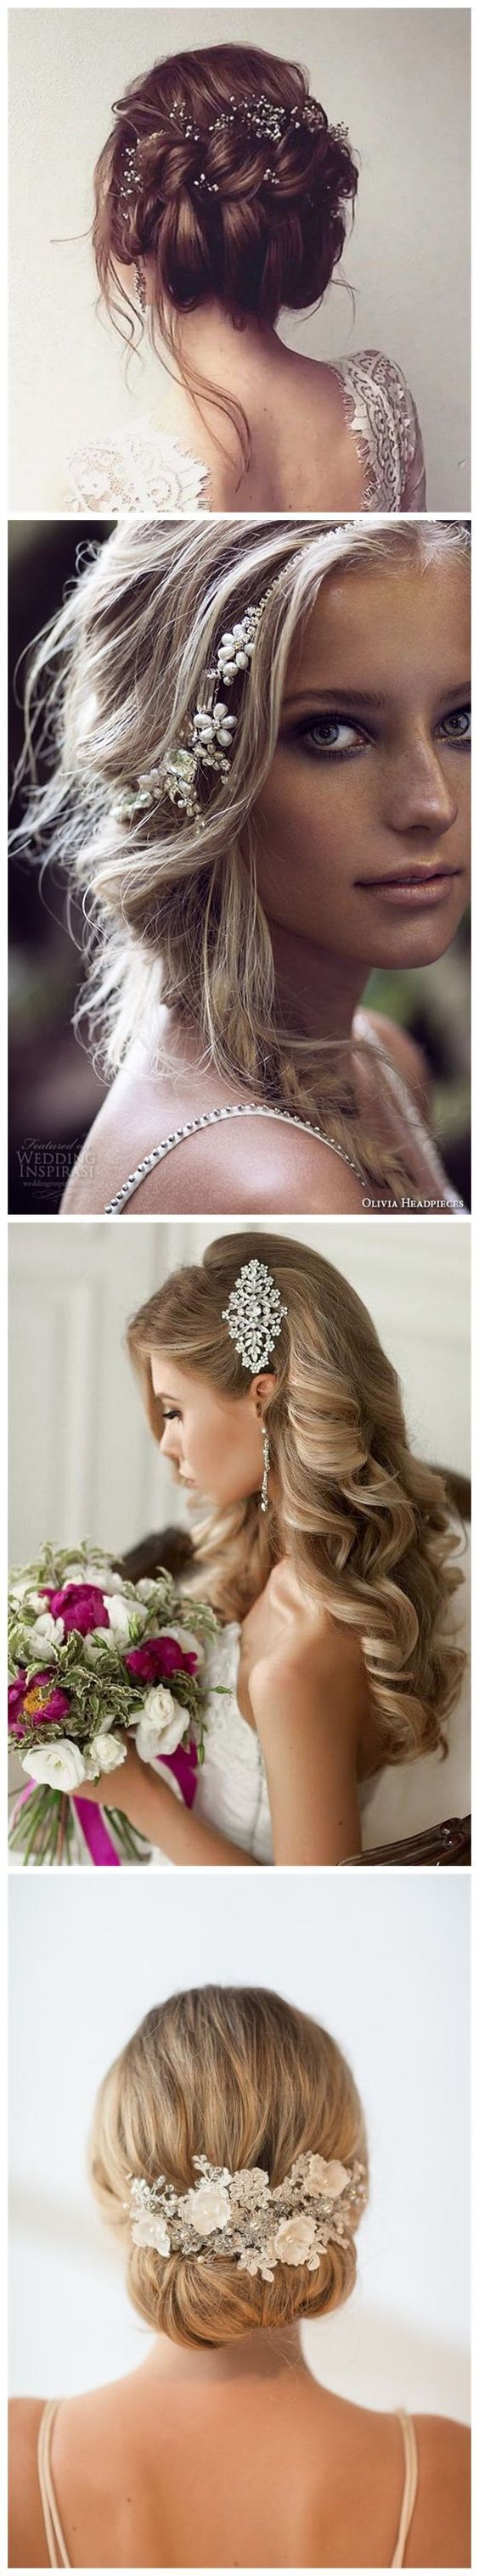 Wedding Hairstyles Hair Comes the Bride 20 Bridal Hair Accessories Get Style Advice for Any Budget See more: www.weddinginclud...